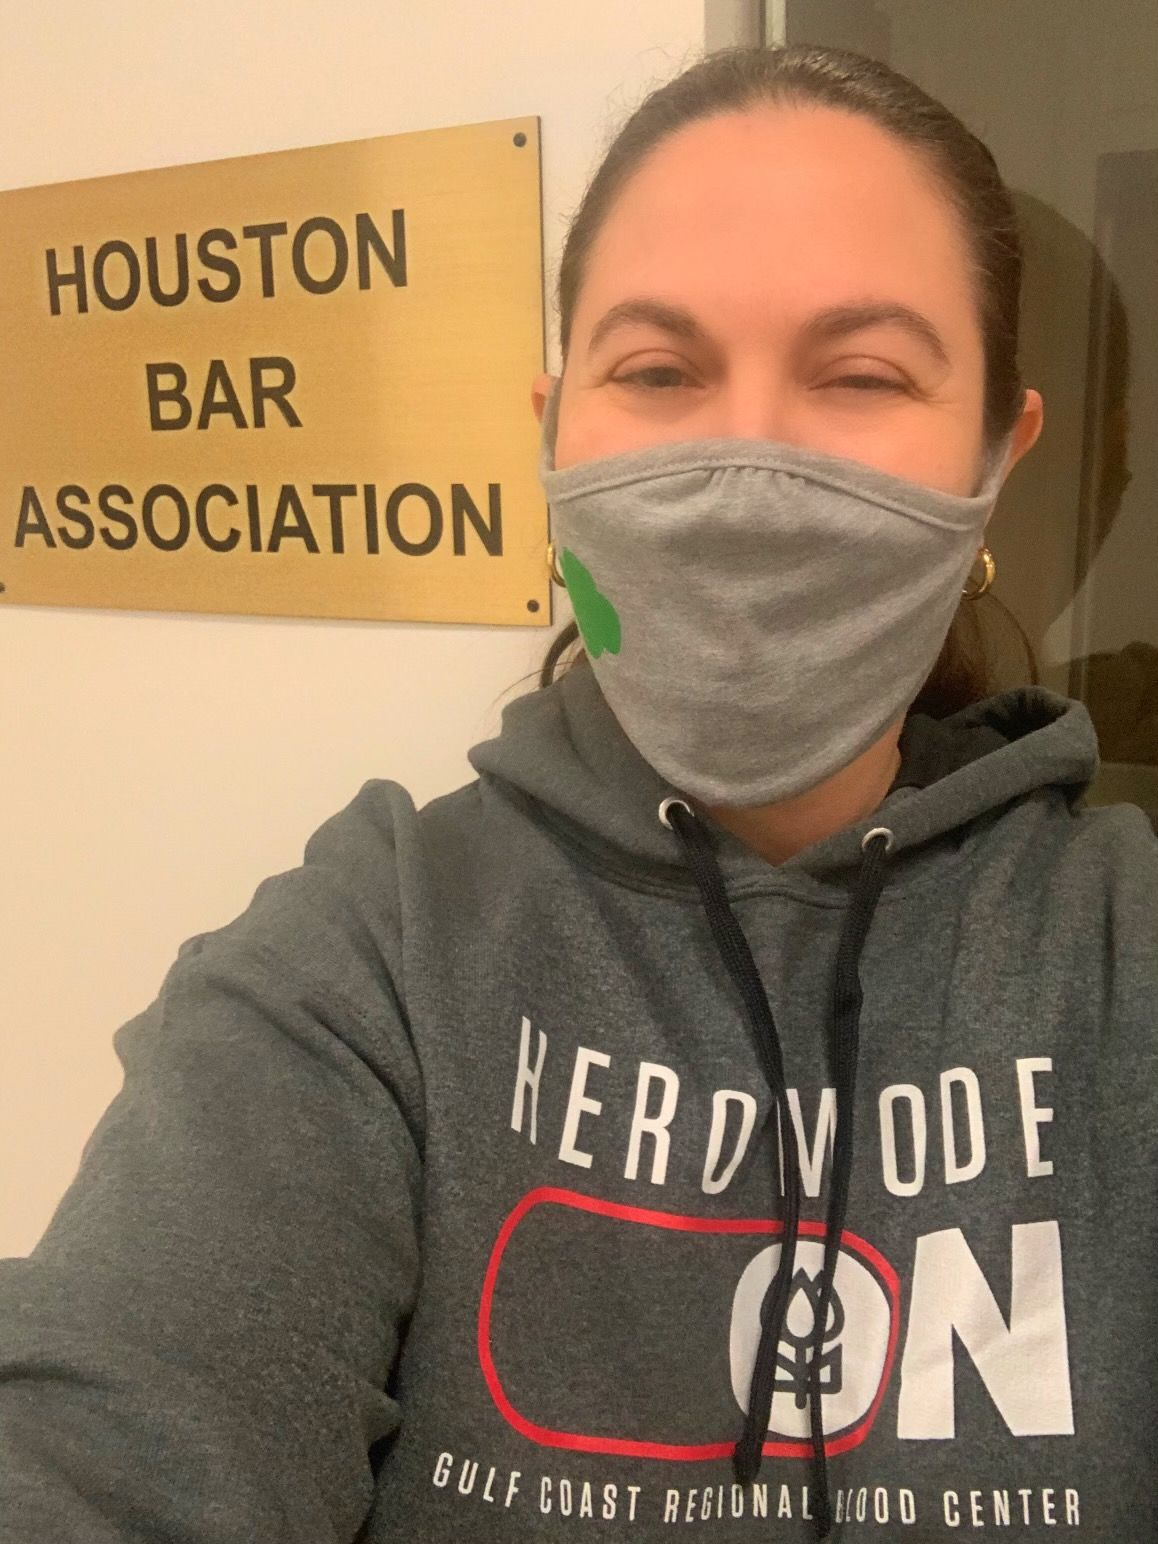 A woman in a mask and the blood donor hoodie